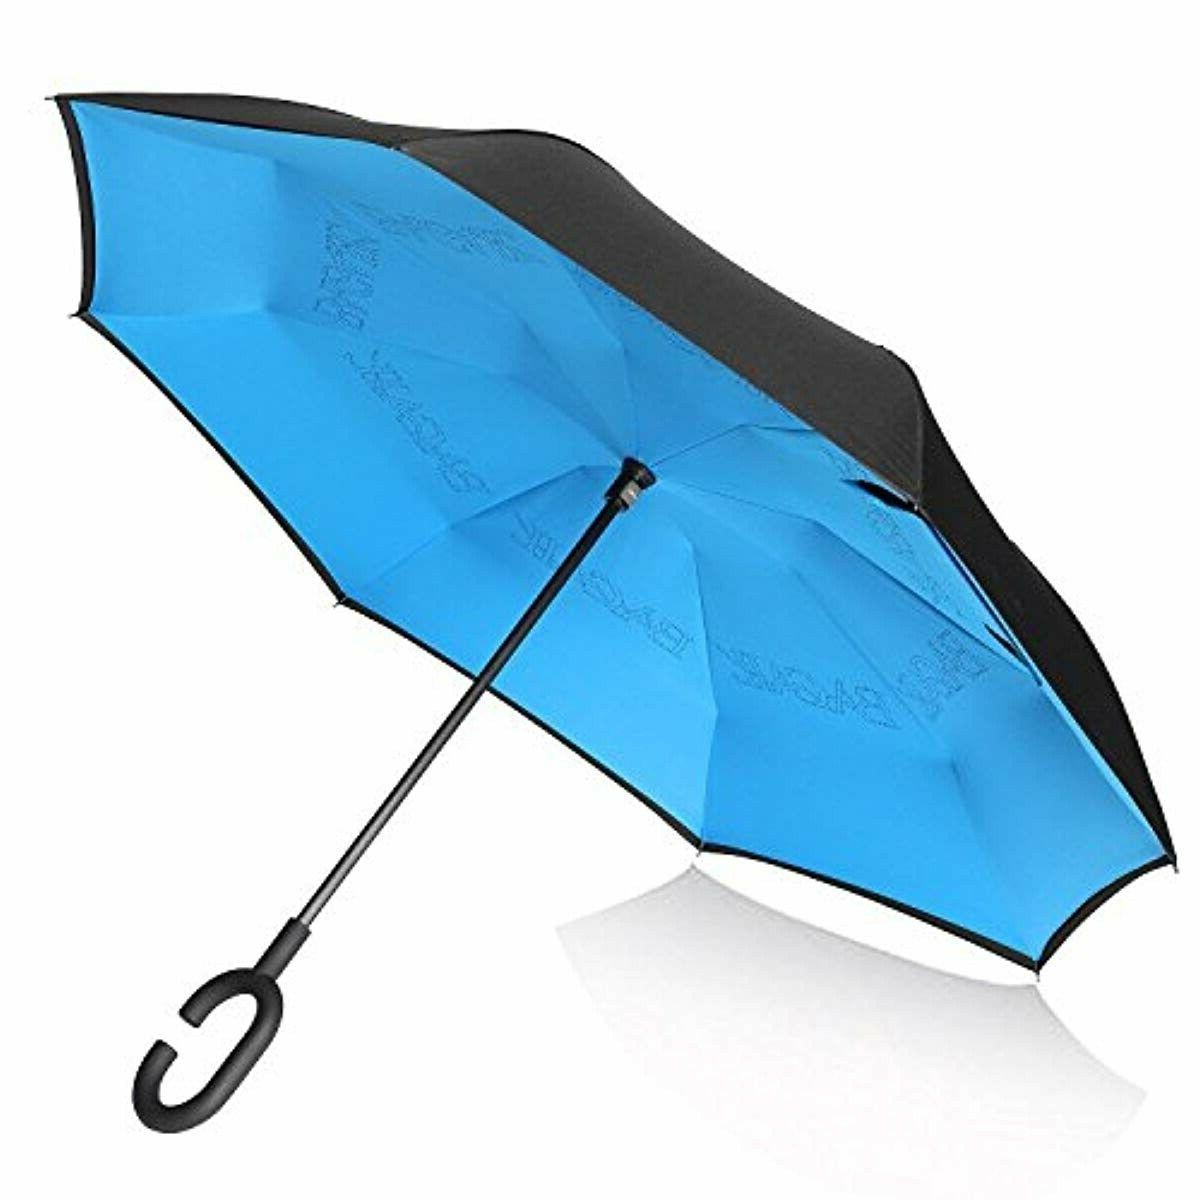 double layer inverted umbrellas reverse folding windproof